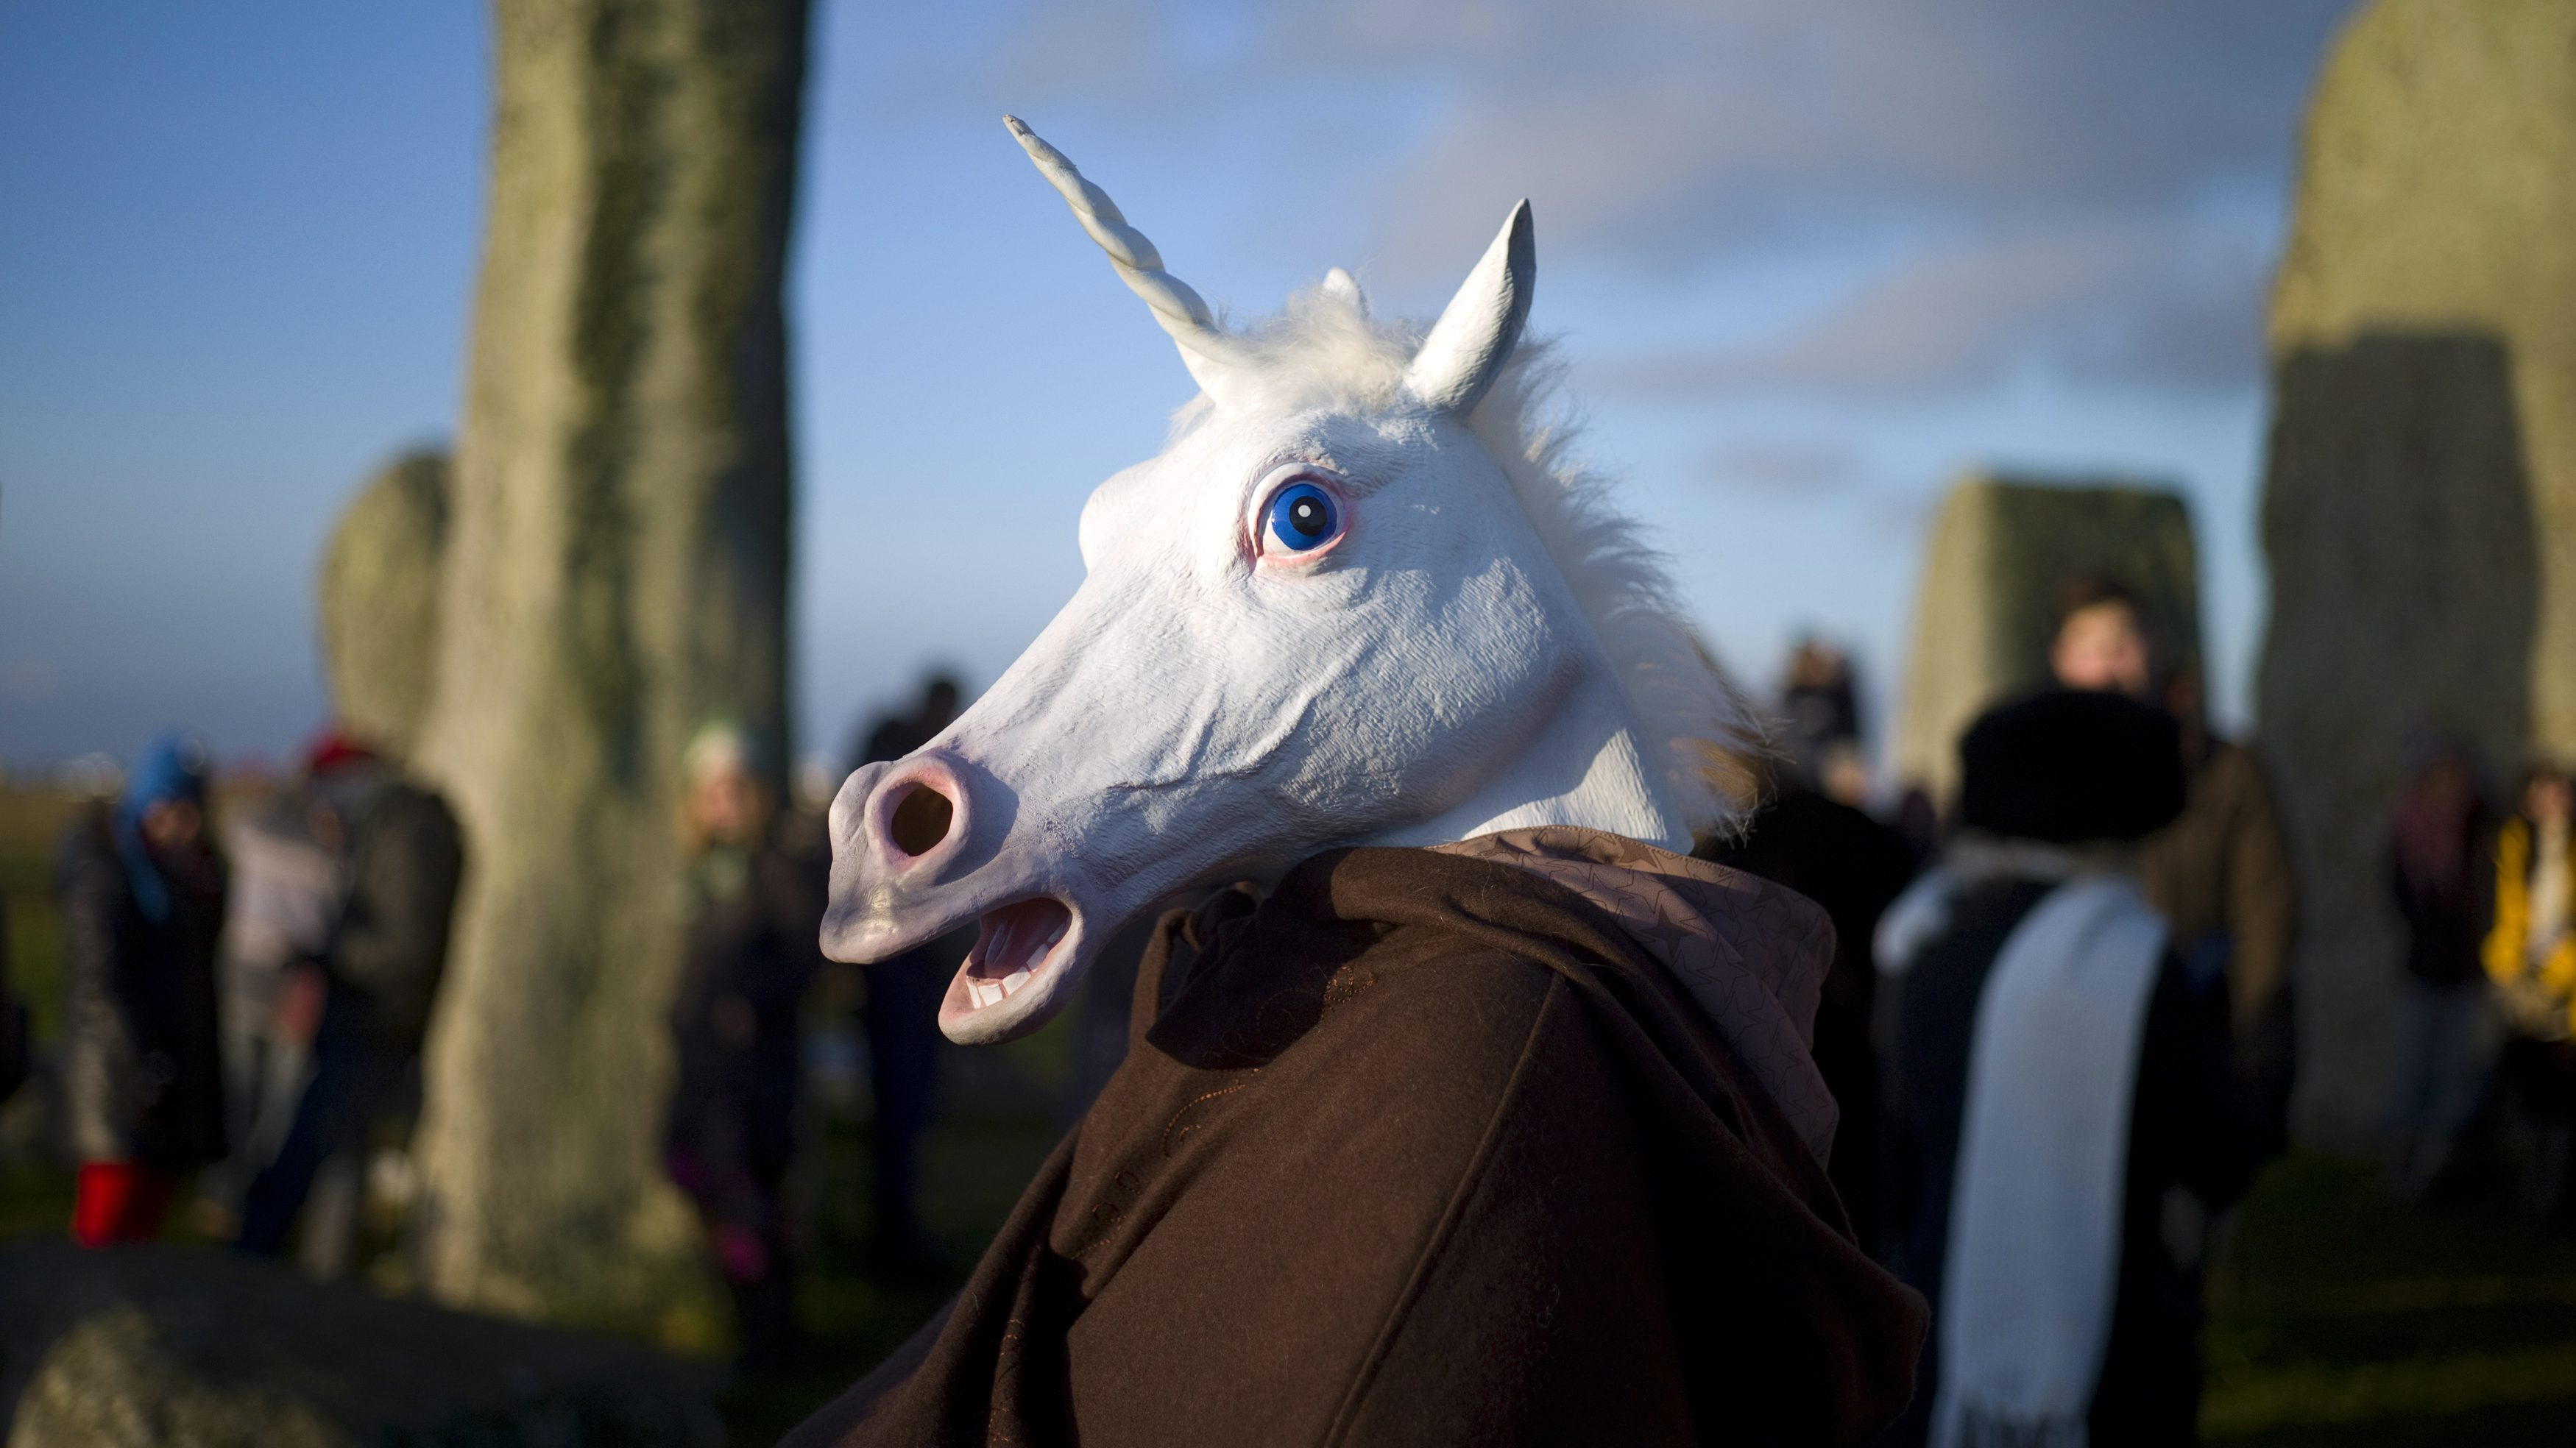 A reveller, dressed as a unicorn, celebrates the sunrise during the winter solstice at Stonehenge on Salisbury Plain in southern England December 21, 2012. The winter solstice is the shortest day of the year, and the longest night of the year. REUTERS/Kieran Doherty  (BRITAIN - Tags: ANNIVERSARY ENVIRONMENT SOCIETY TPX IMAGES OF THE DAY) - GM1E8CL1LWW01